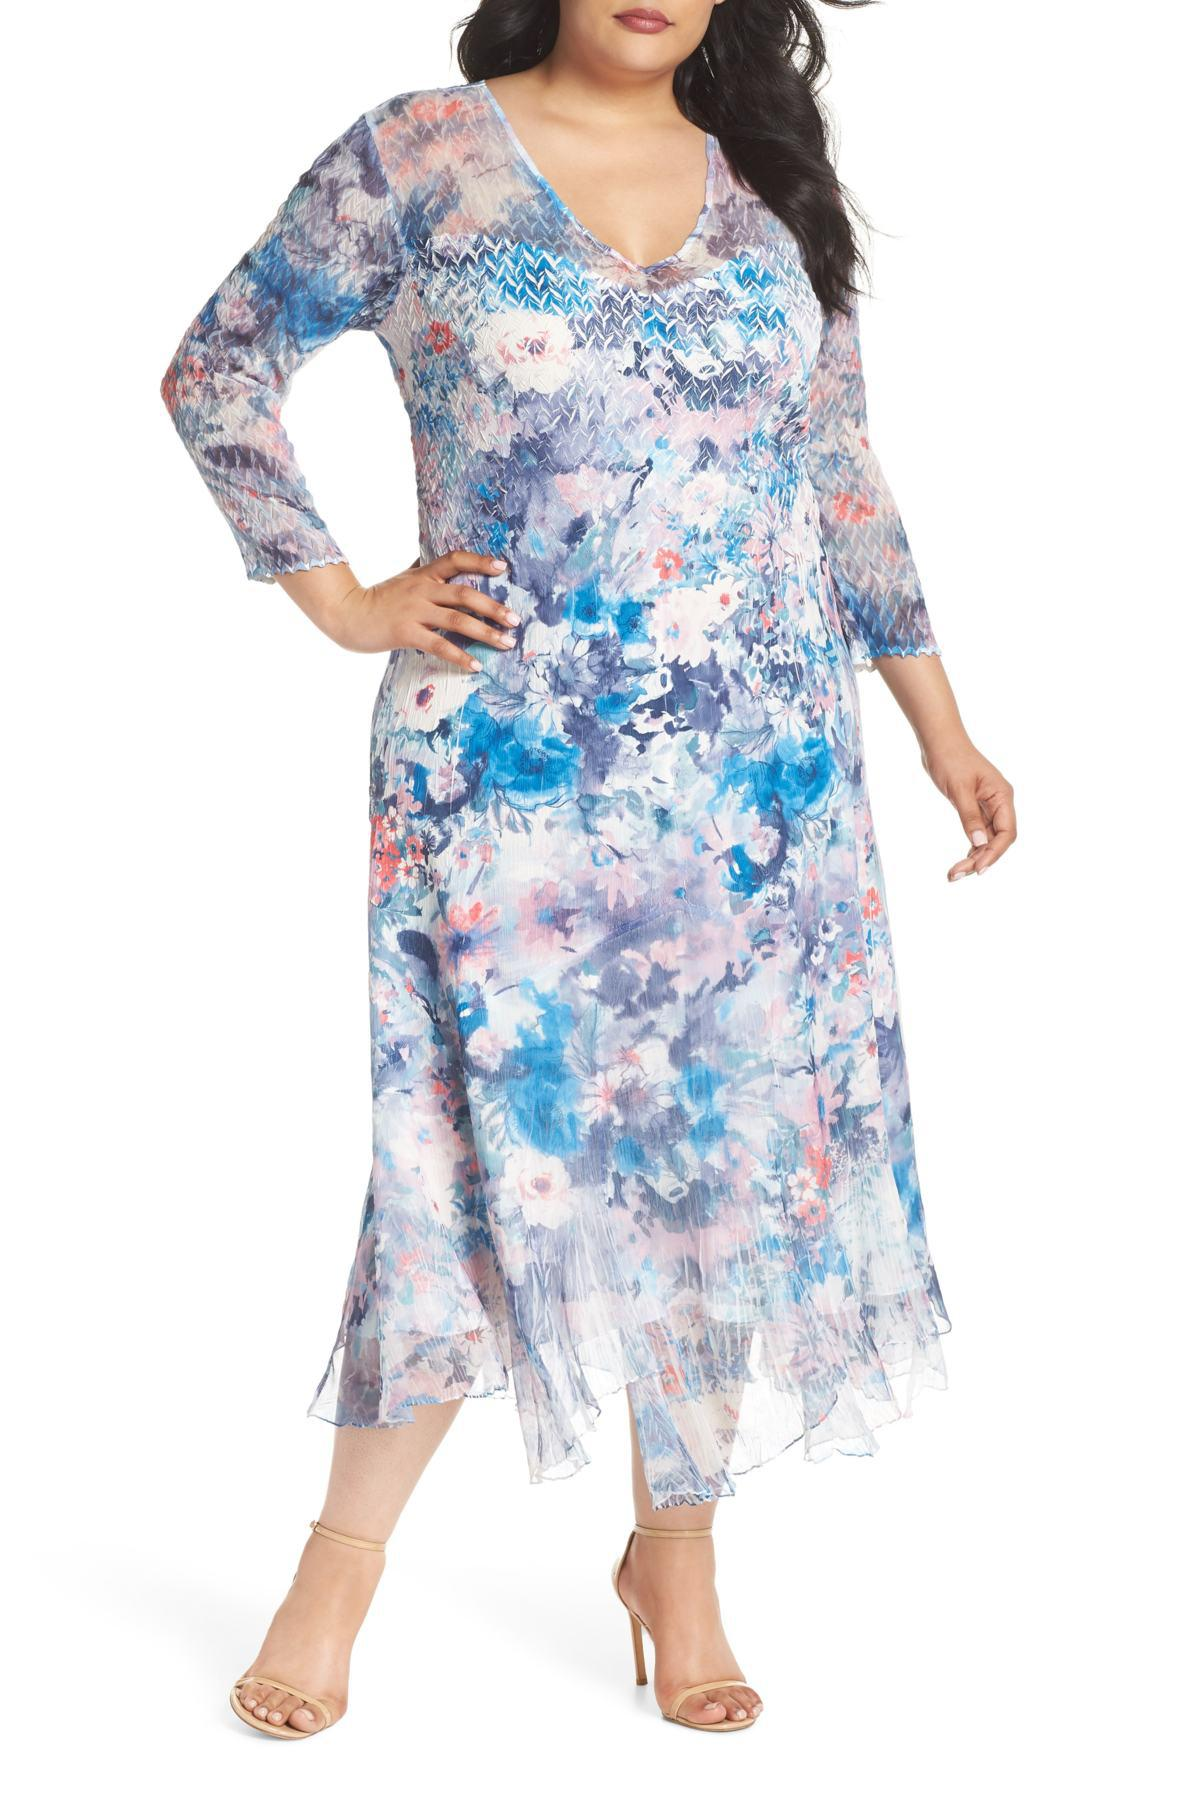 b5a9e521f64d2 Komarov. Women s Blue Inset Floral Charmeuse   Chiffon A-line Dress (plus  Size)